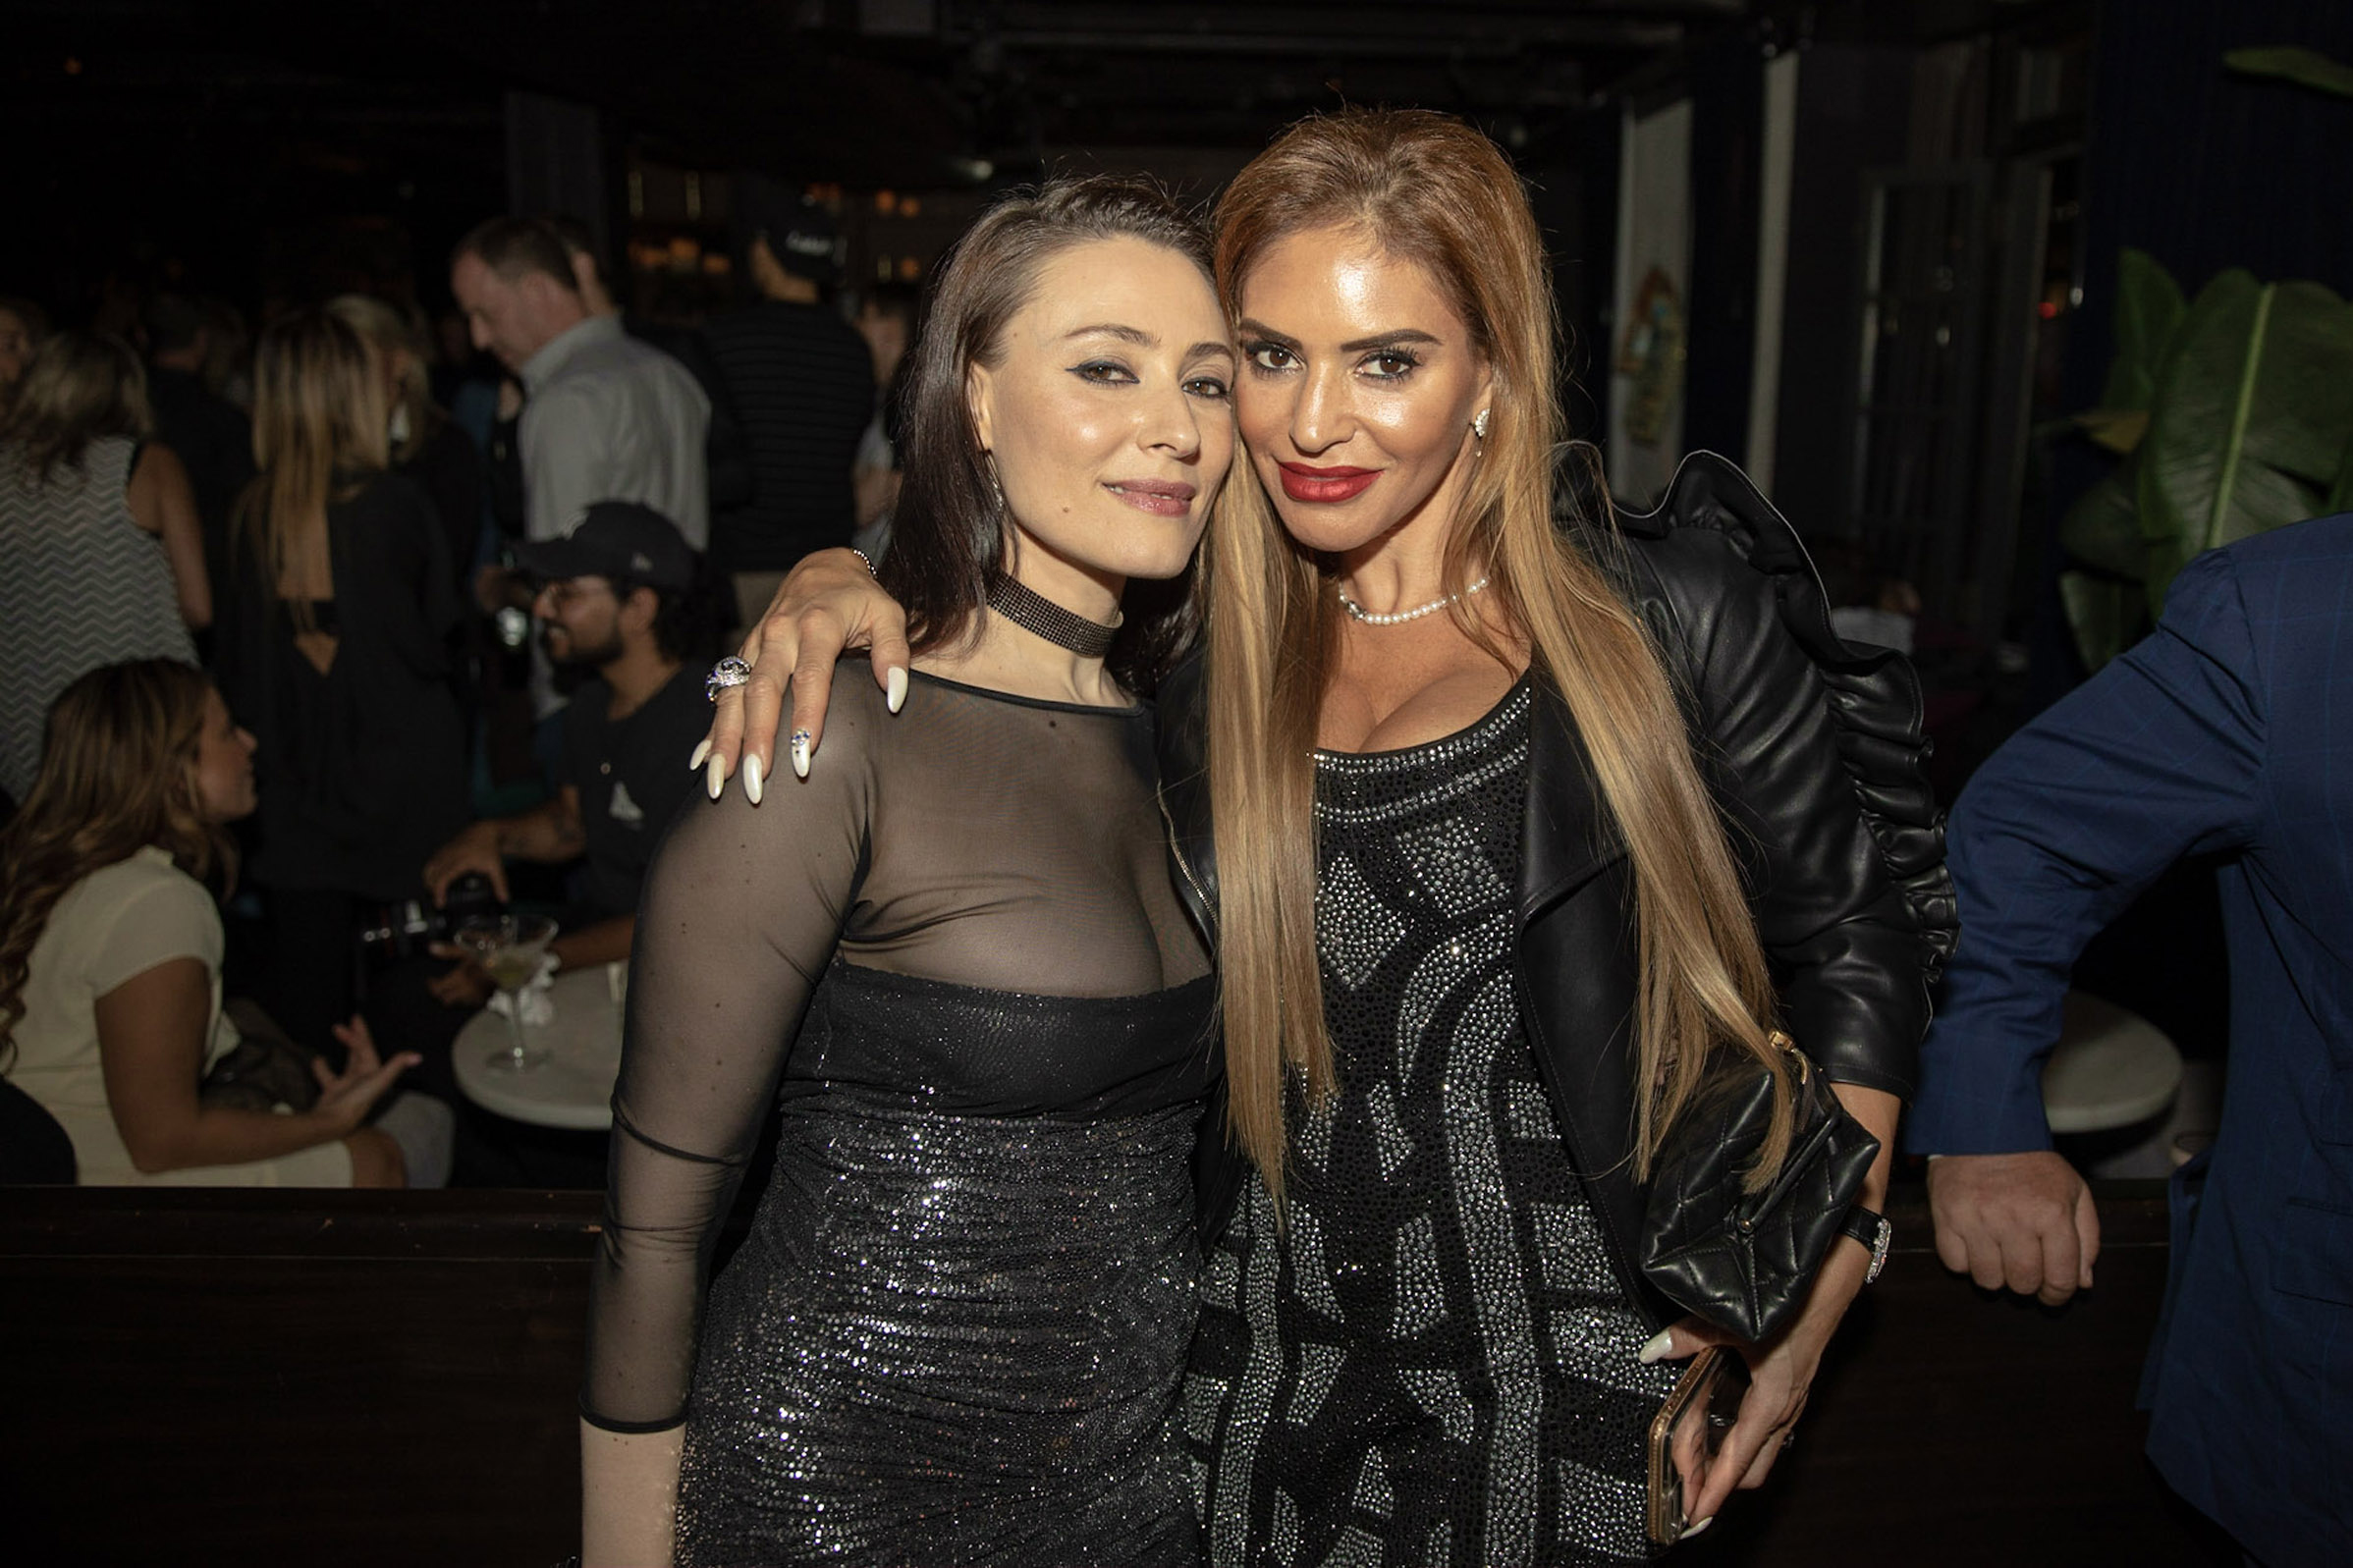 Spirit & Flesh Magazine Jussie Smollett cover event, Yelena Deyneko & Rosa Veitsman by Kenneth de la Torre